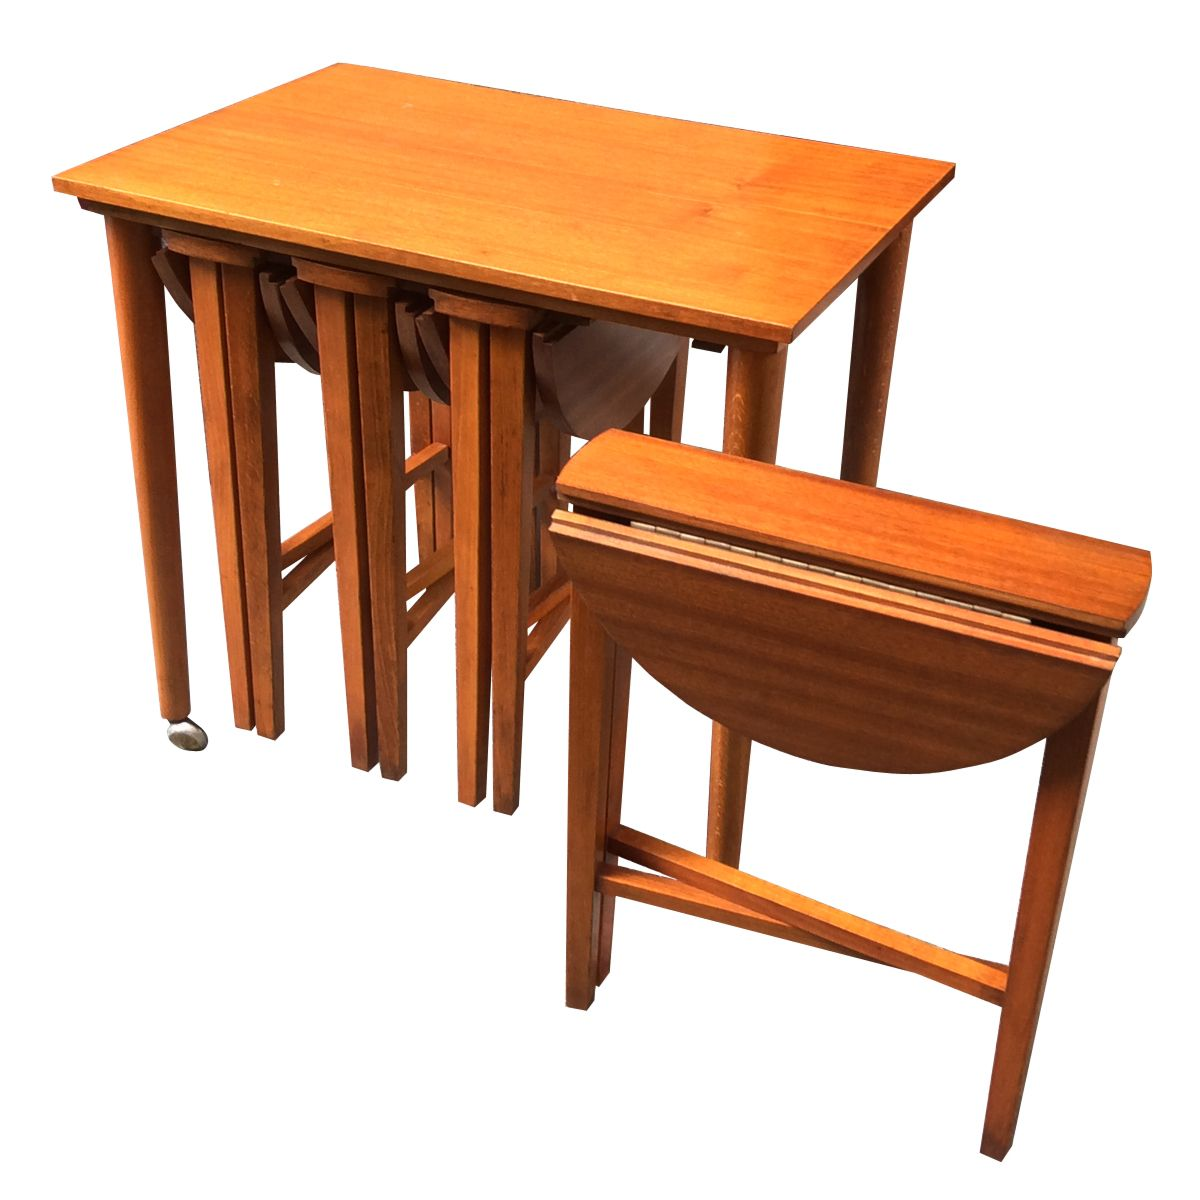 Wonderful image of Vintage Teak Nesting Tables Set of 5 for sale at Pamono with #CA7301 color and 1200x1200 pixels